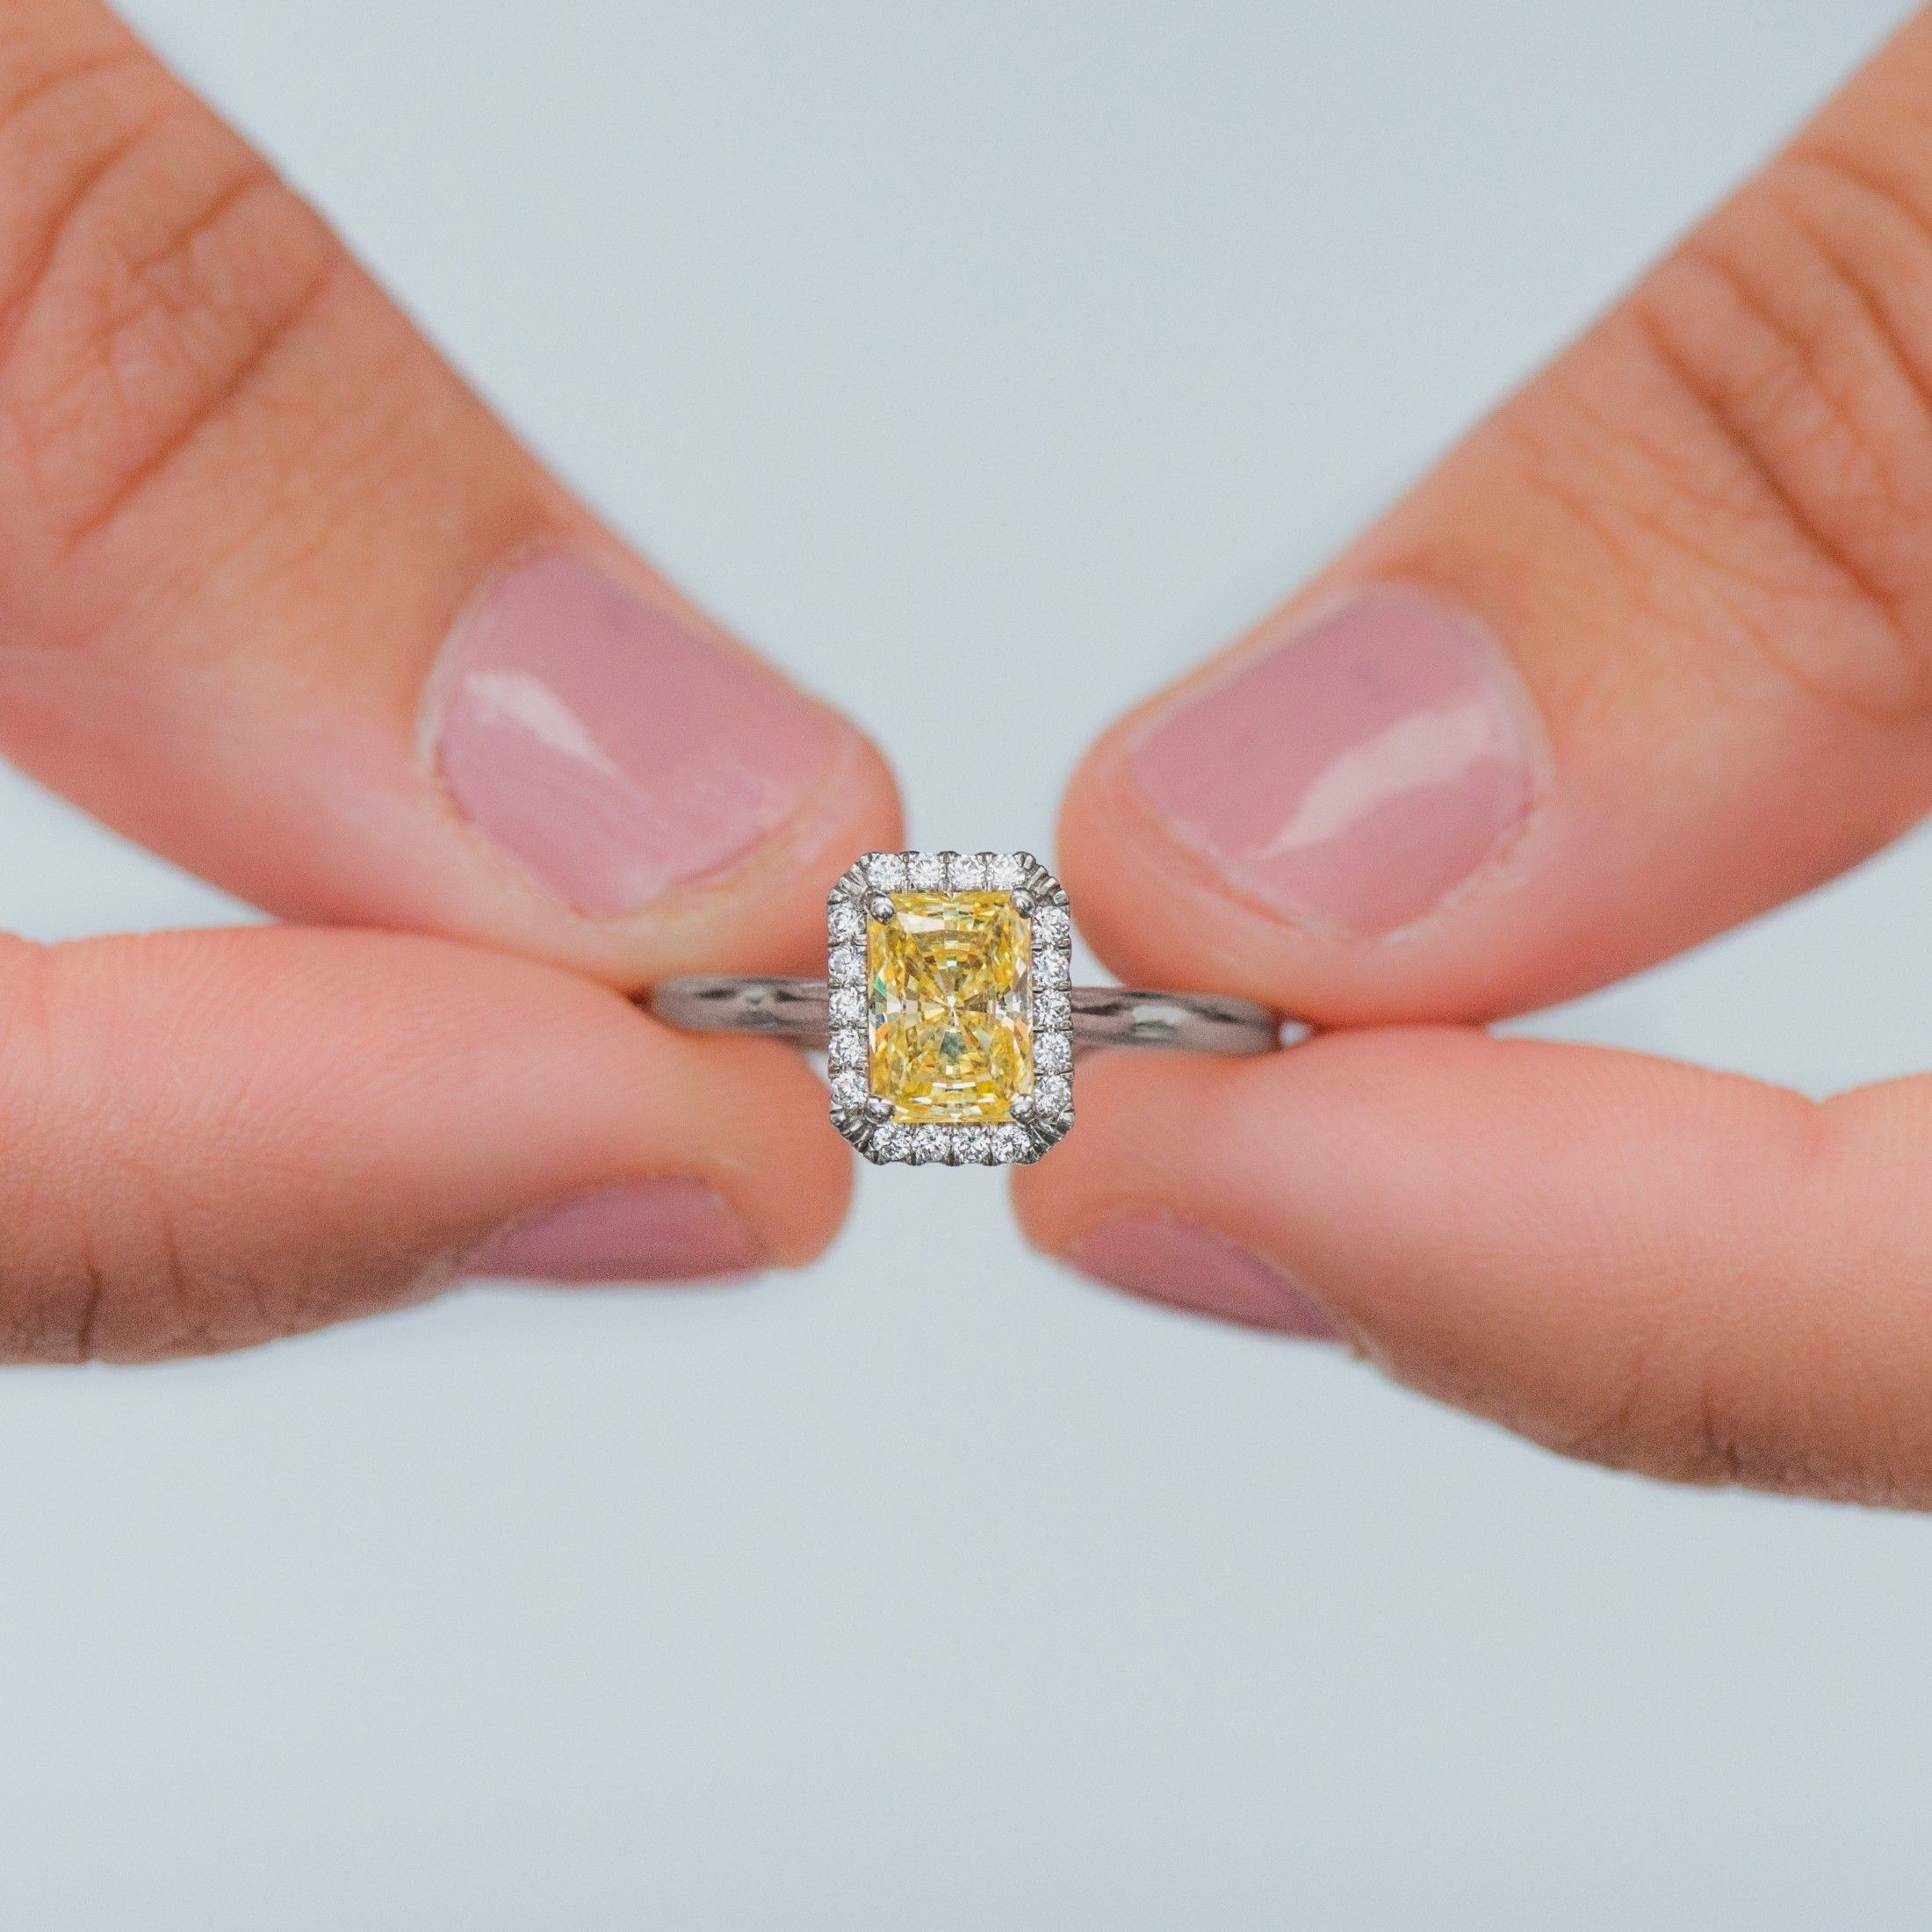 Beautiful Yellow Diamond Engagement Rings On Hand - Best Jewelry